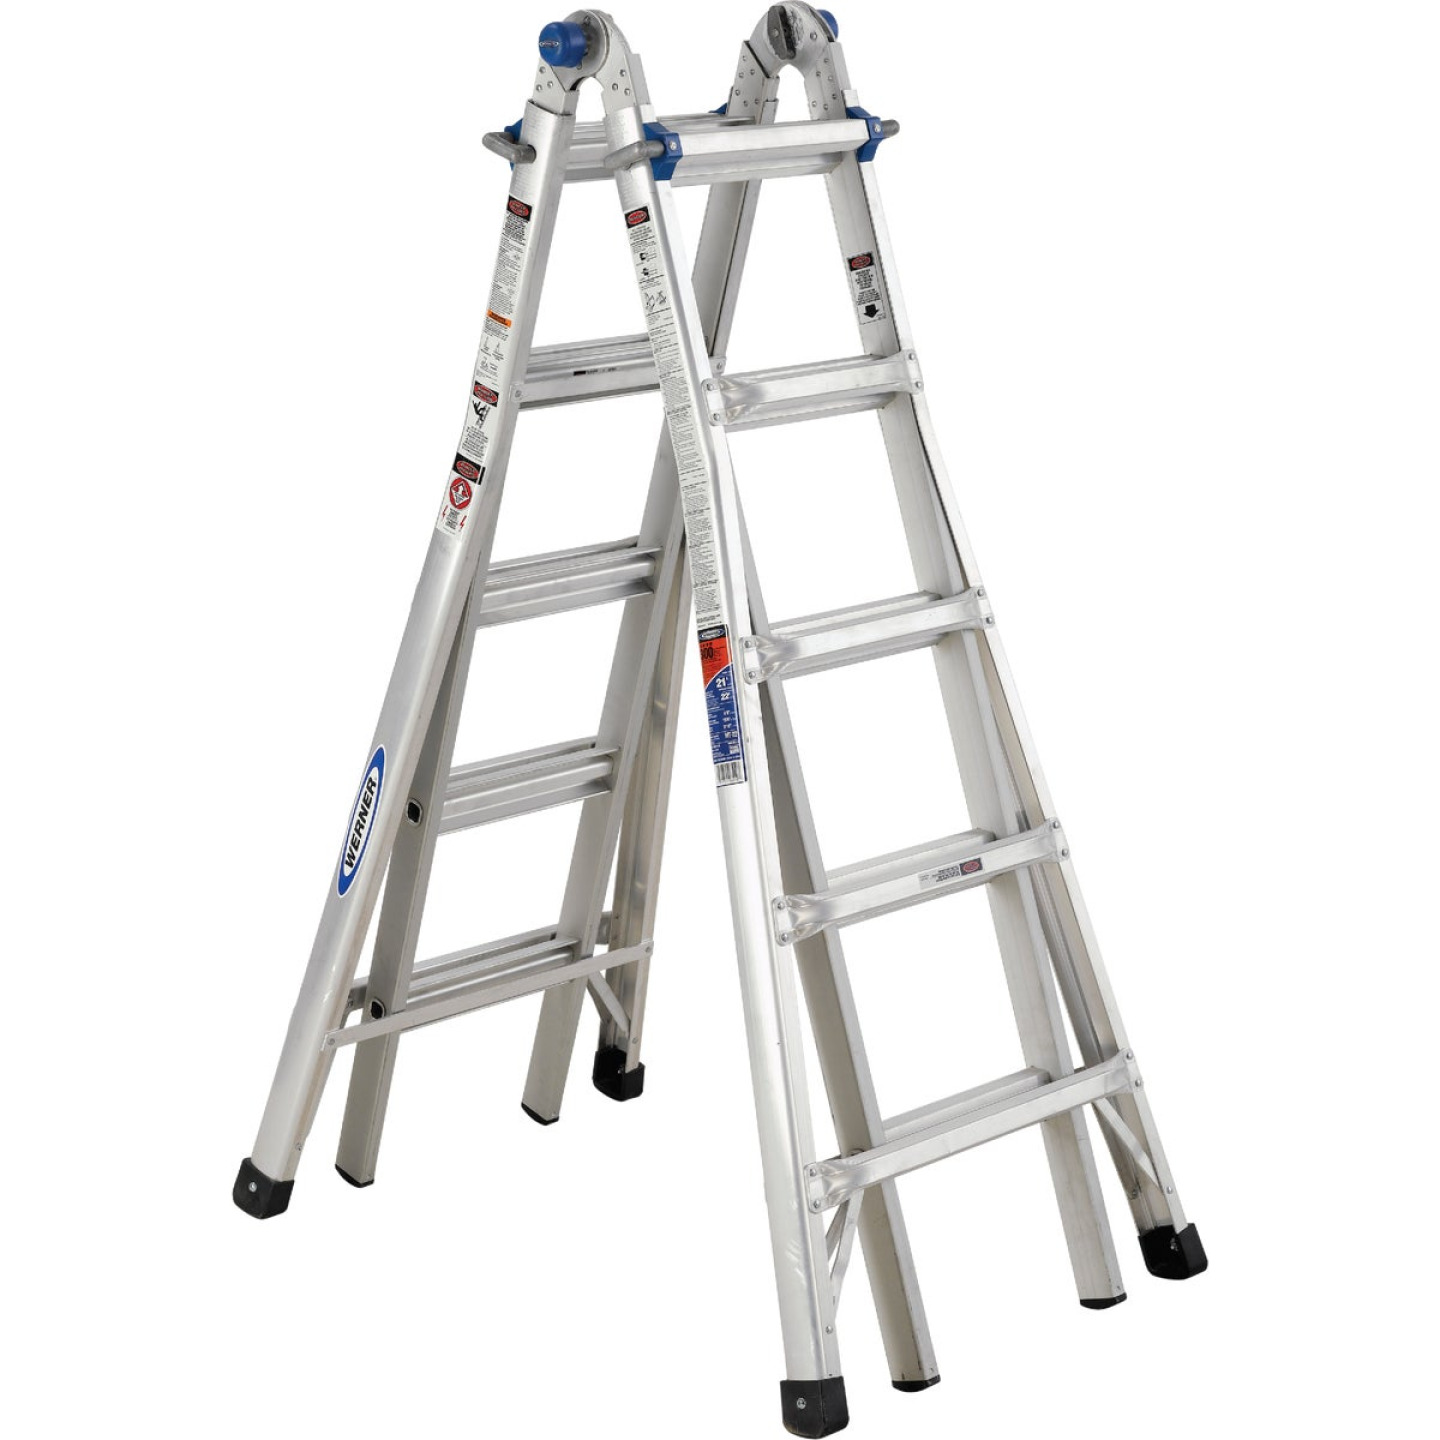 Werner 22 Ft. Aluminum Multi-Position Telescoping Ladder with 300 Lb. Load Capacity Type IA Ladder Rating Image 5